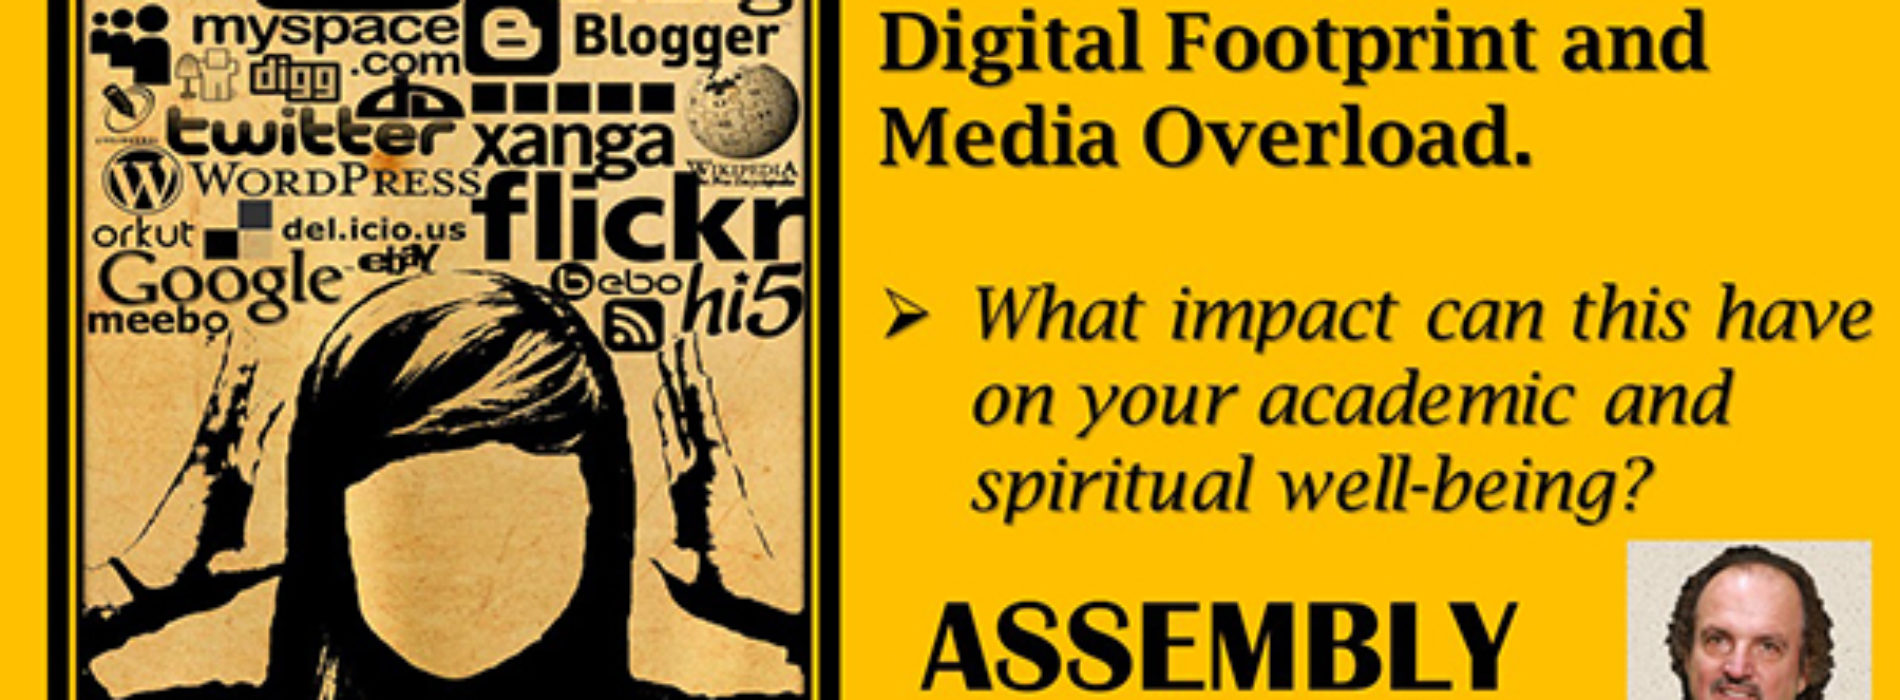 Assembly to Feature Online Presence